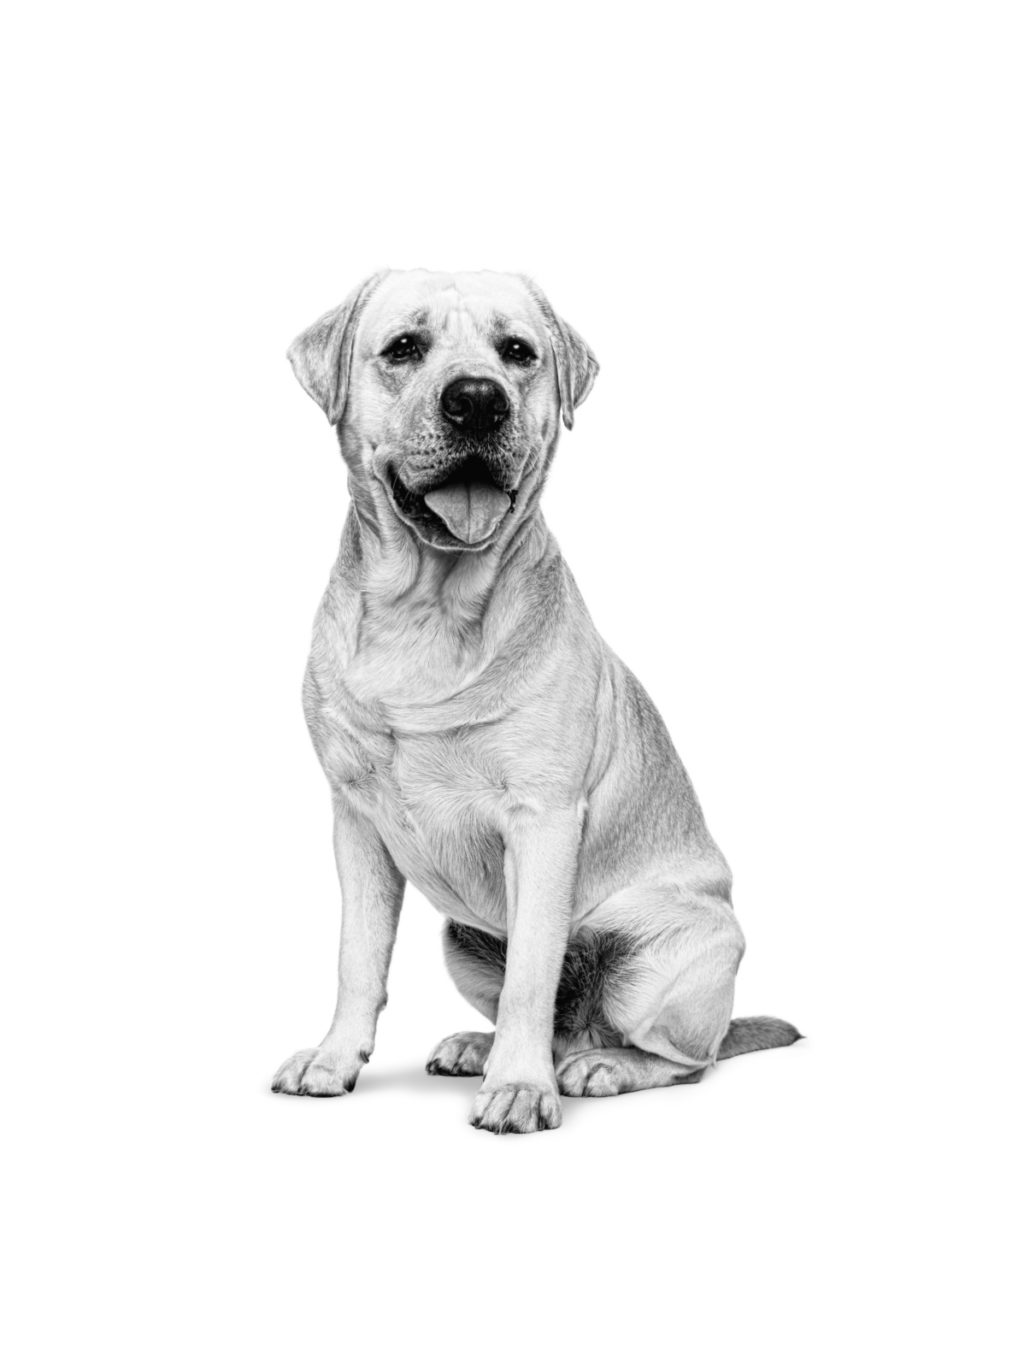 Differences Between Labrador and Golden Retriever - ROYAL CANIN®